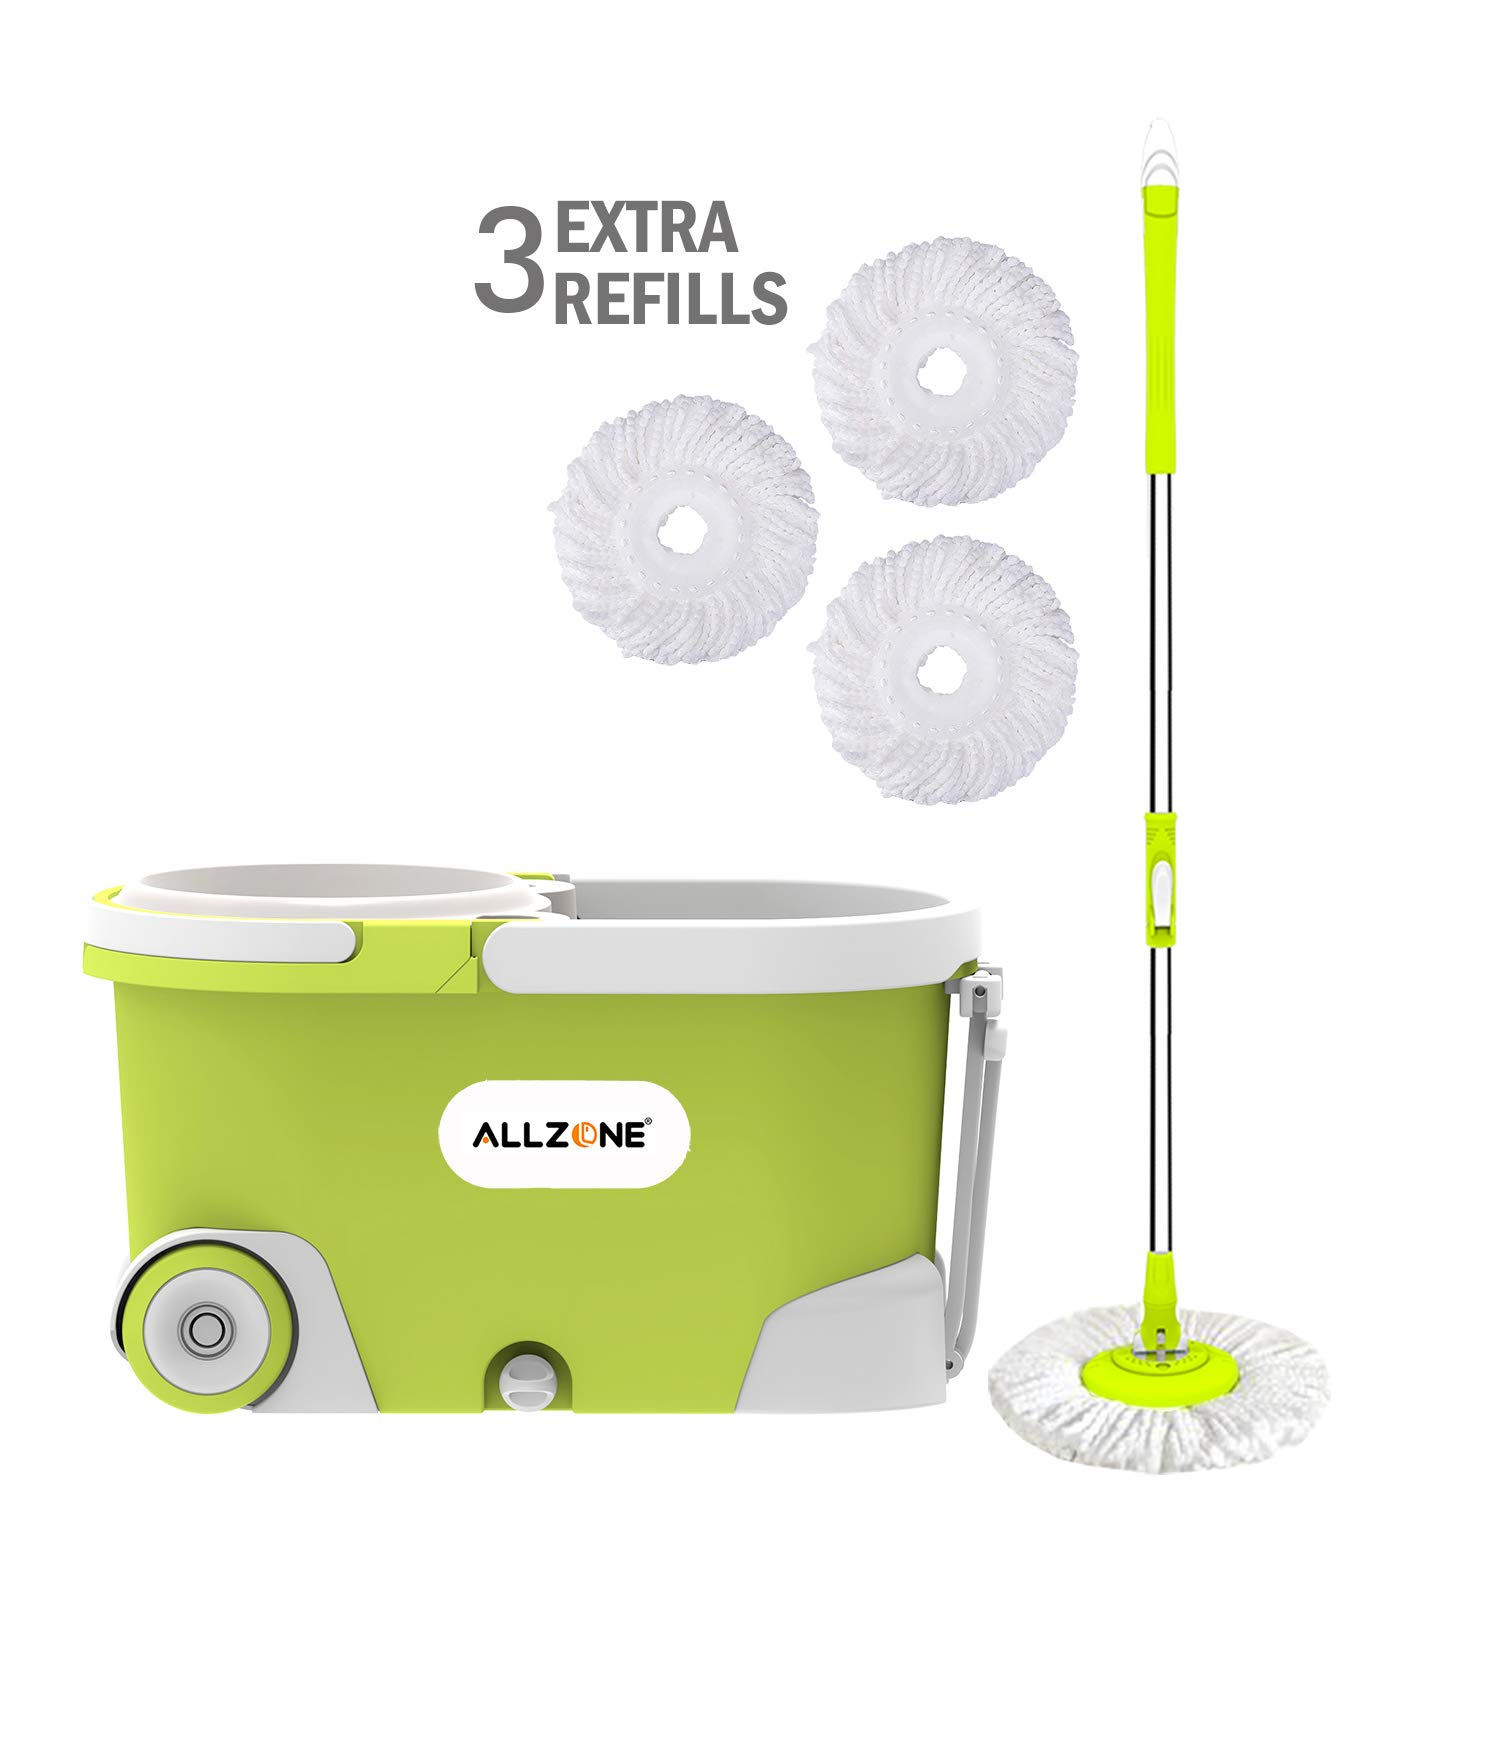 ALLZONE Spin Mop Bucket With Wringer On Wheels, Hardwood Floor Cleaning System, With 3 Microfiber Mop Refills